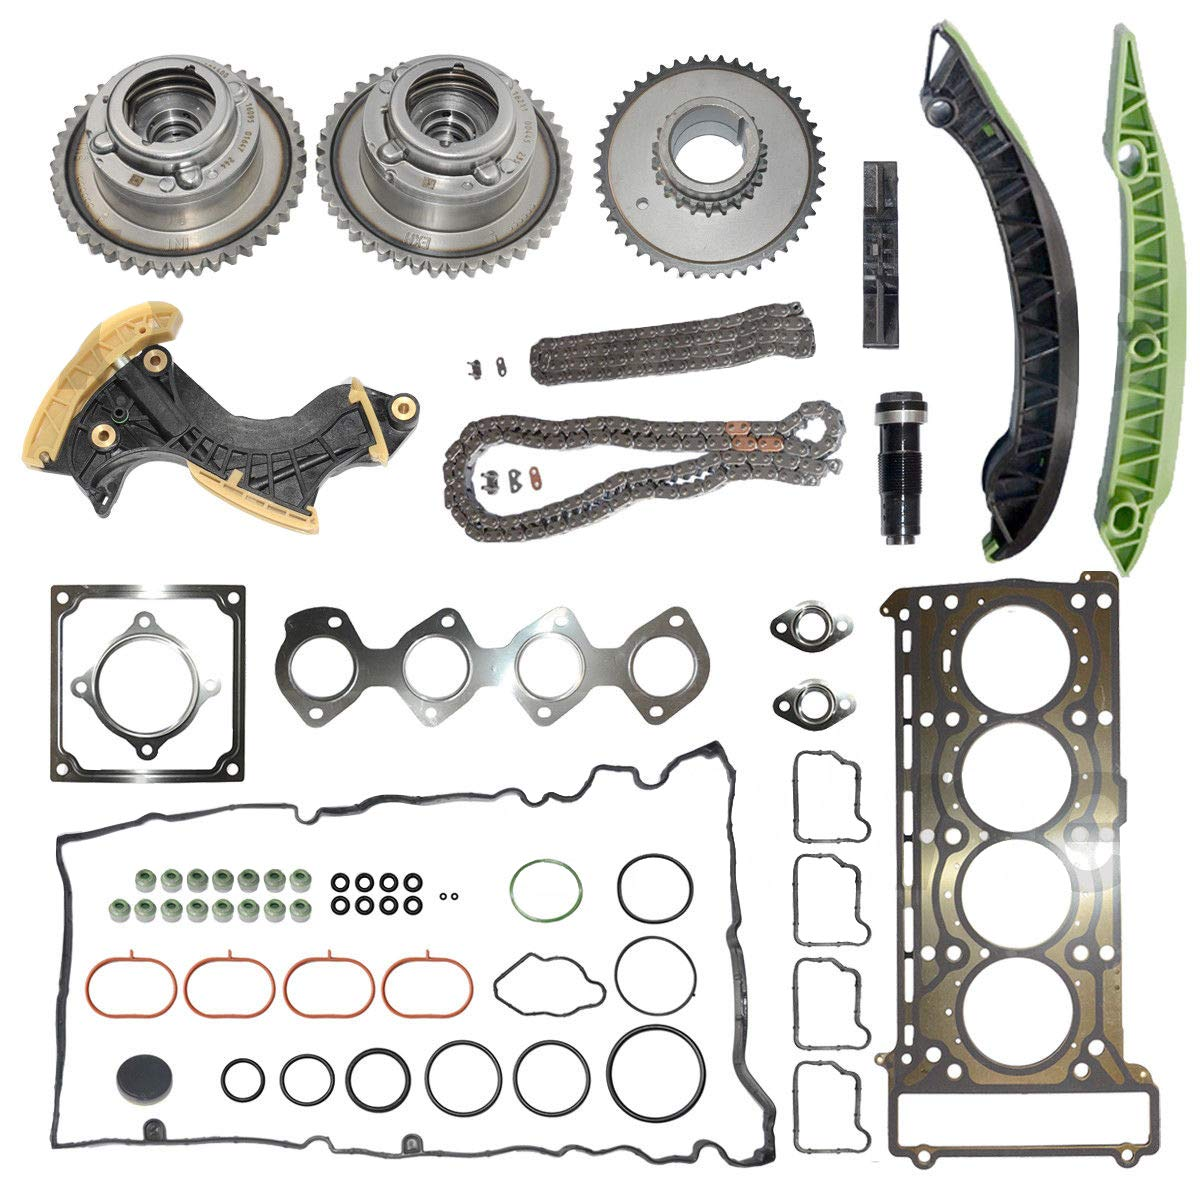 Amazon com: 2710501500 Timing Chain Kit + Gear + Tensioner +